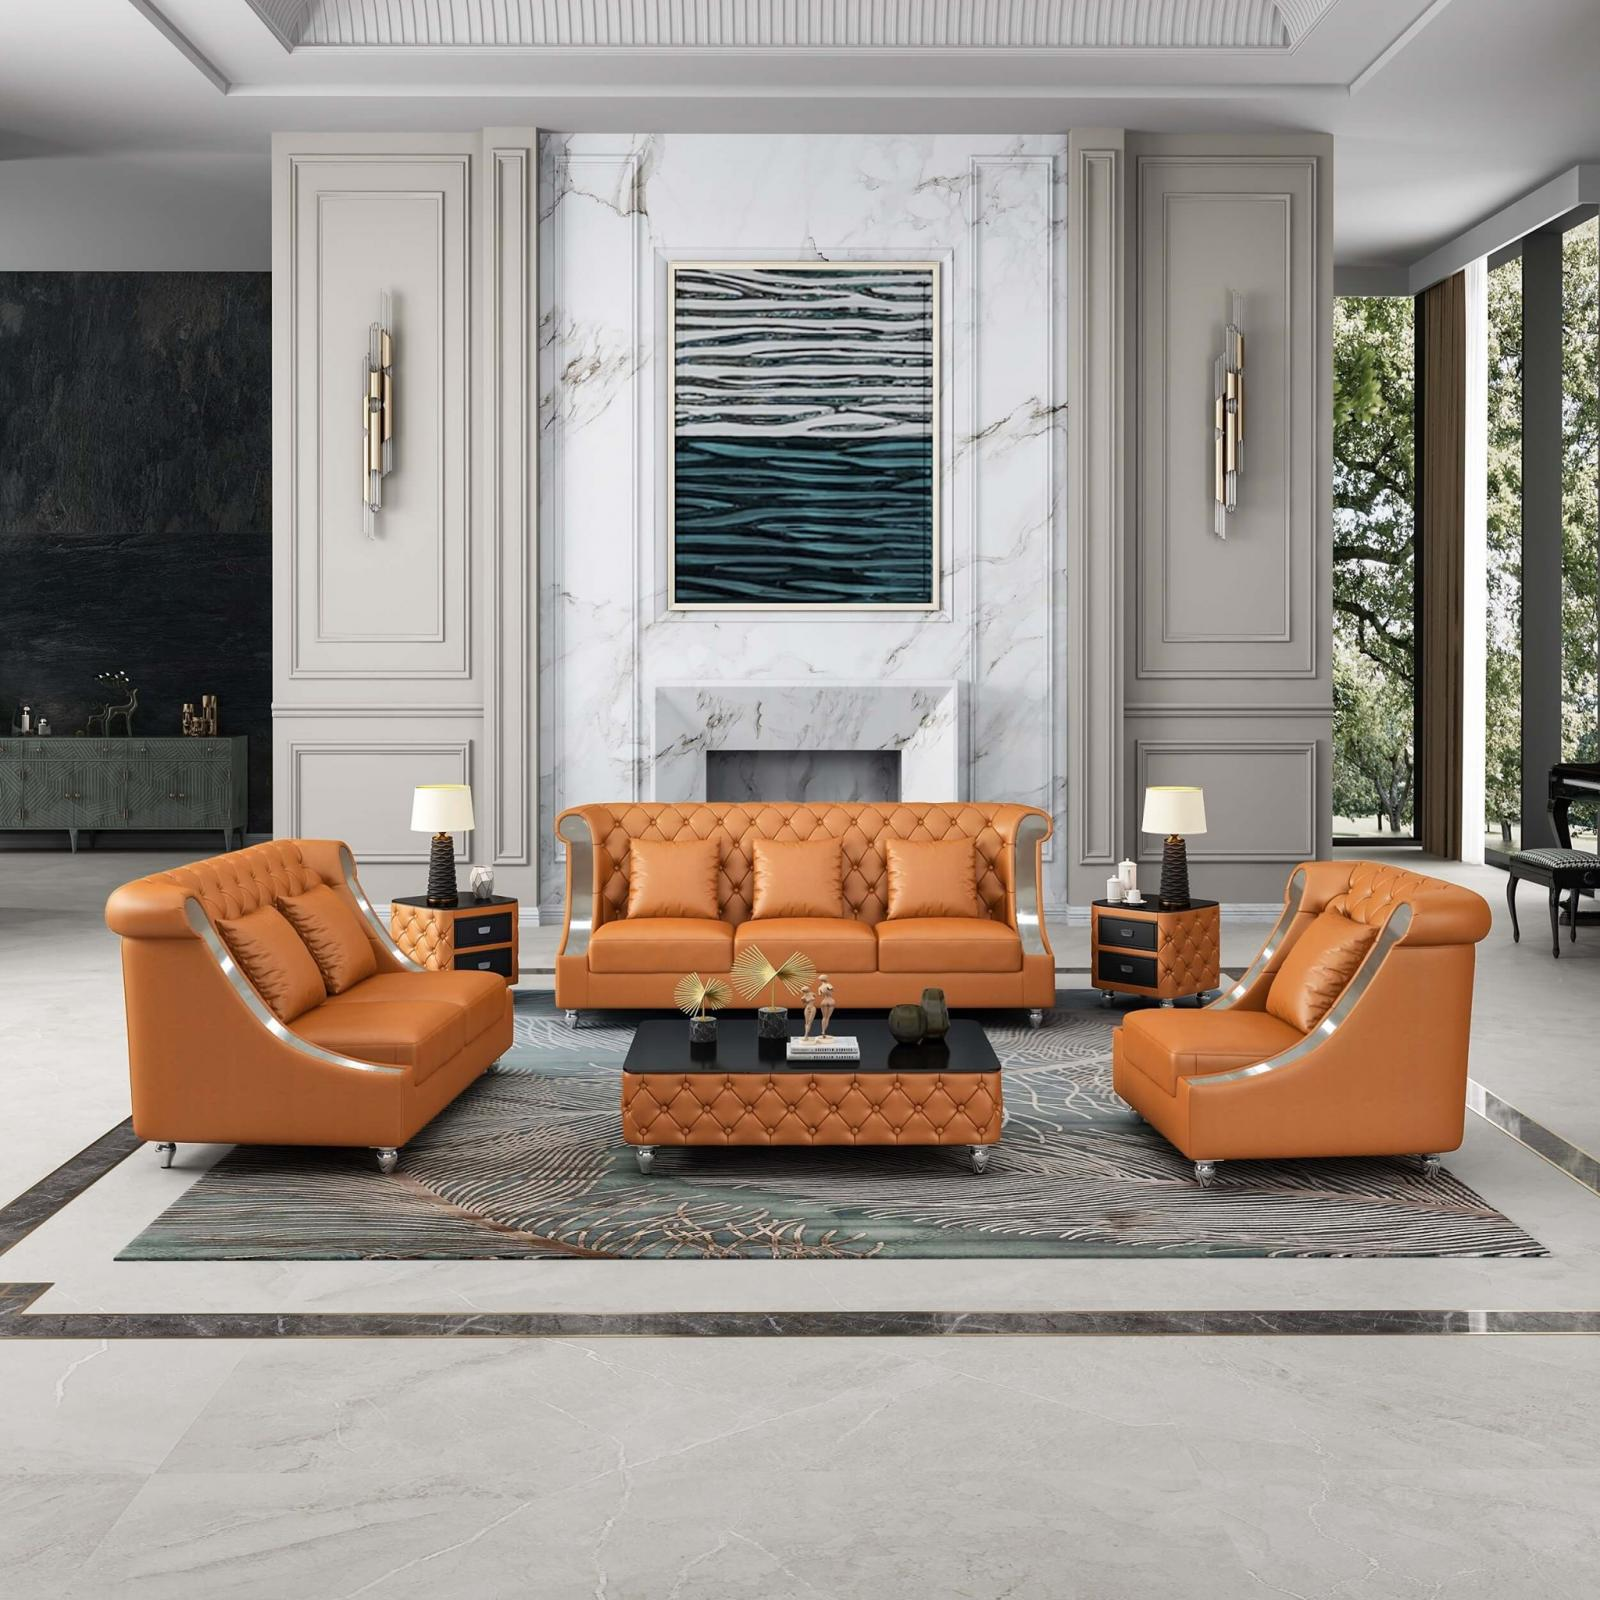 Contemporary, Modern Cognac Leather and Wood, Solid Hardwood Sofa Set 3 pcs MAYFAIR by European Furniture